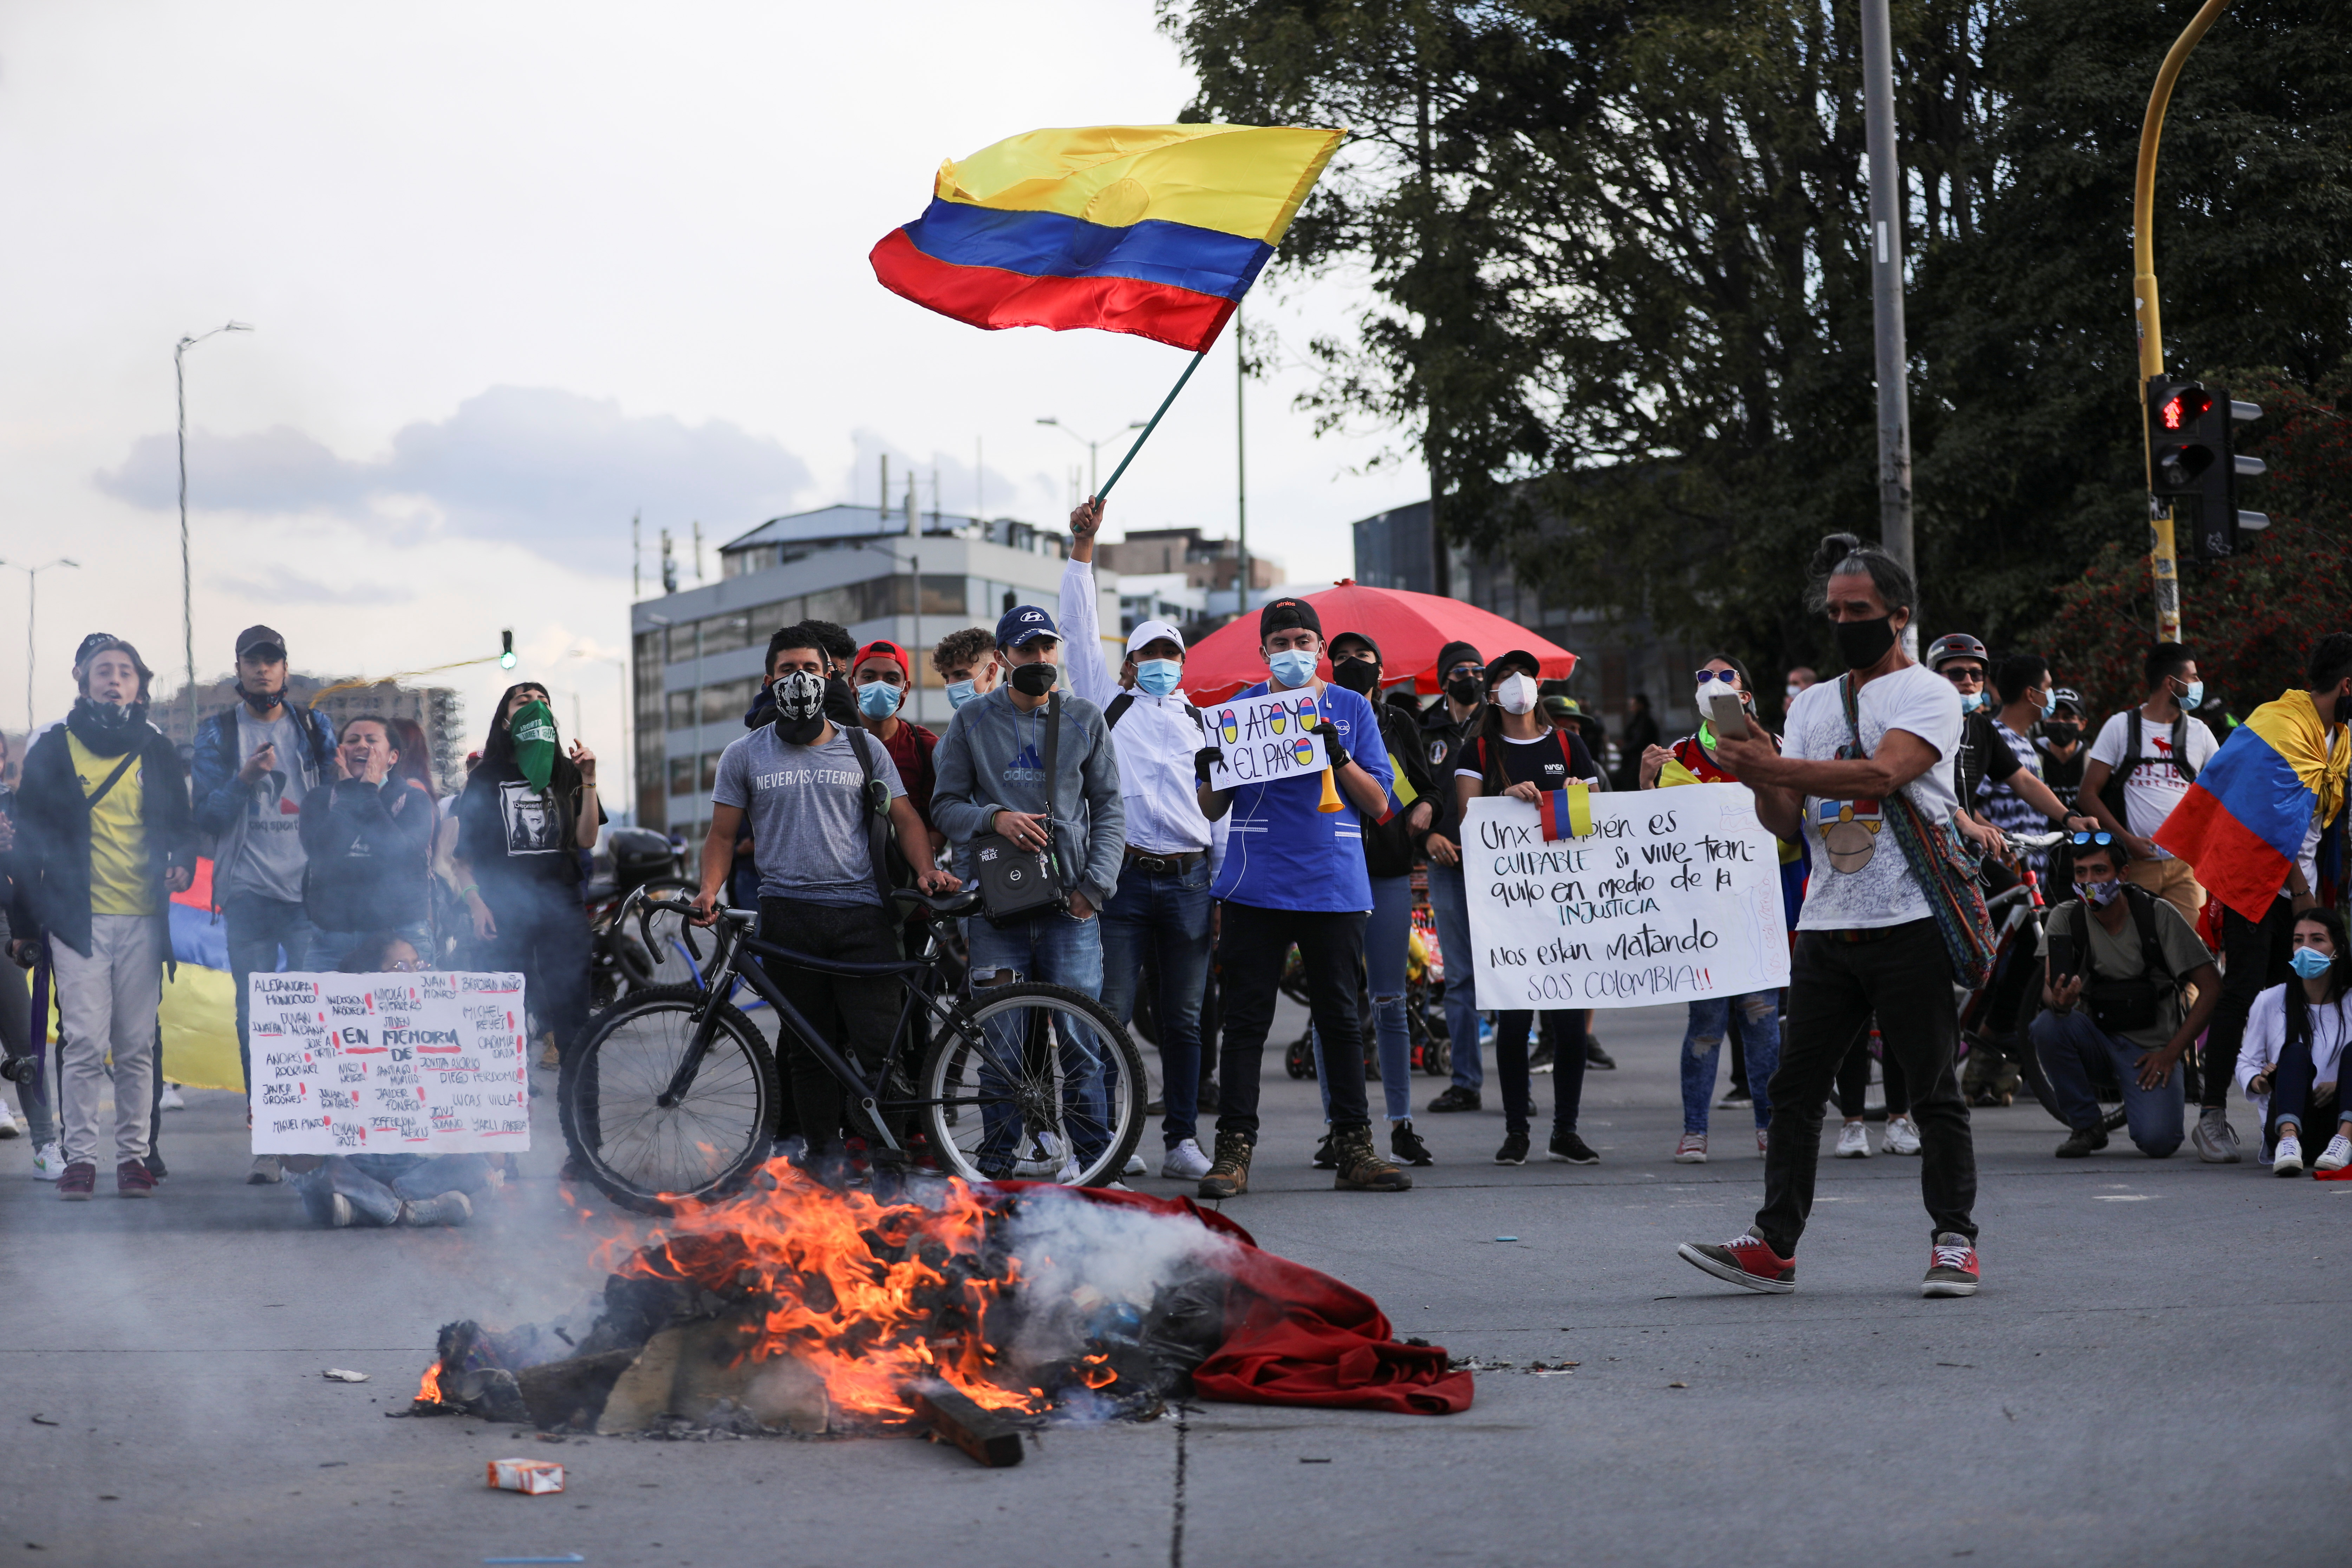 Demonstrators stand near burning objects as they take part in a protest demanding government action to tackle poverty, police violence and inequalities in the health and education systems, in Bogota, Colombia May 6, 2021. REUTERS/Luisa Gonzalez